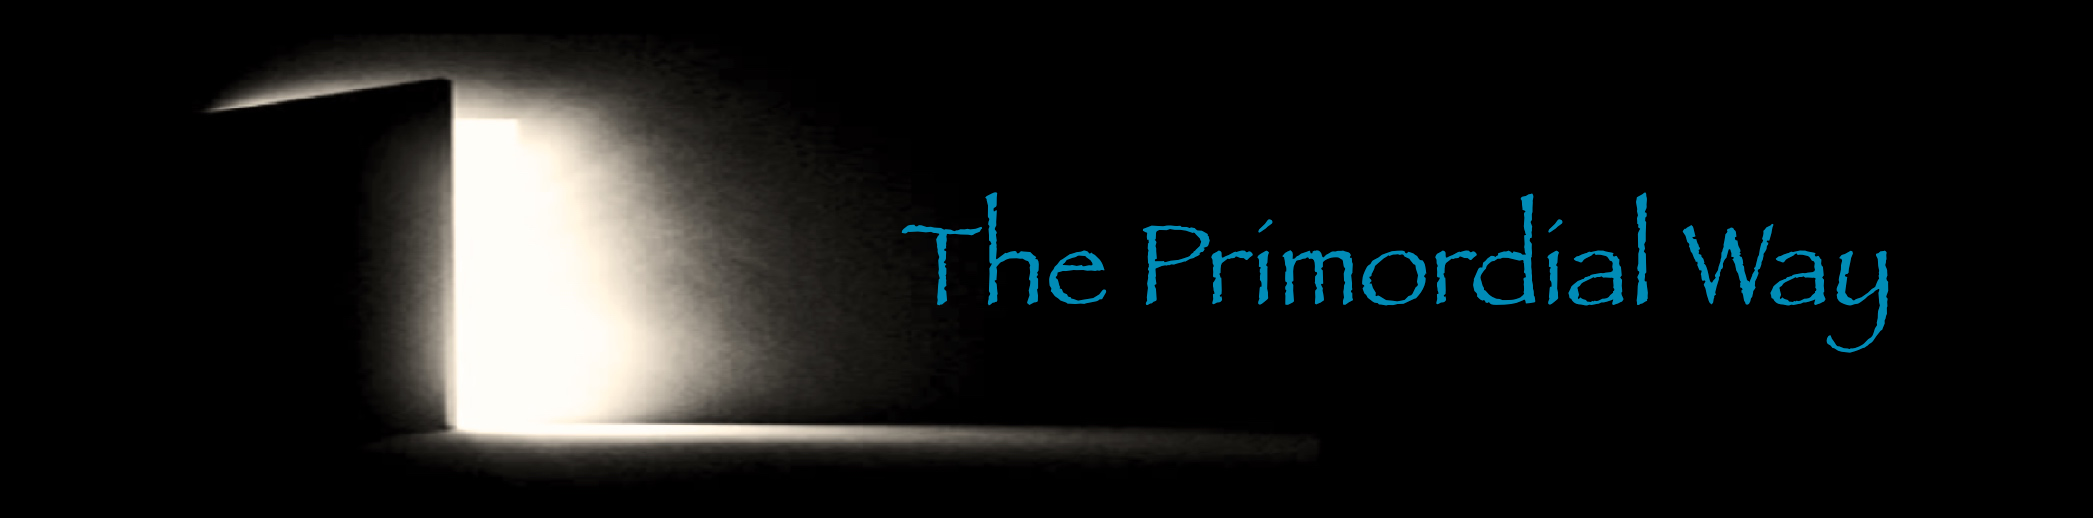 The Primordial Way